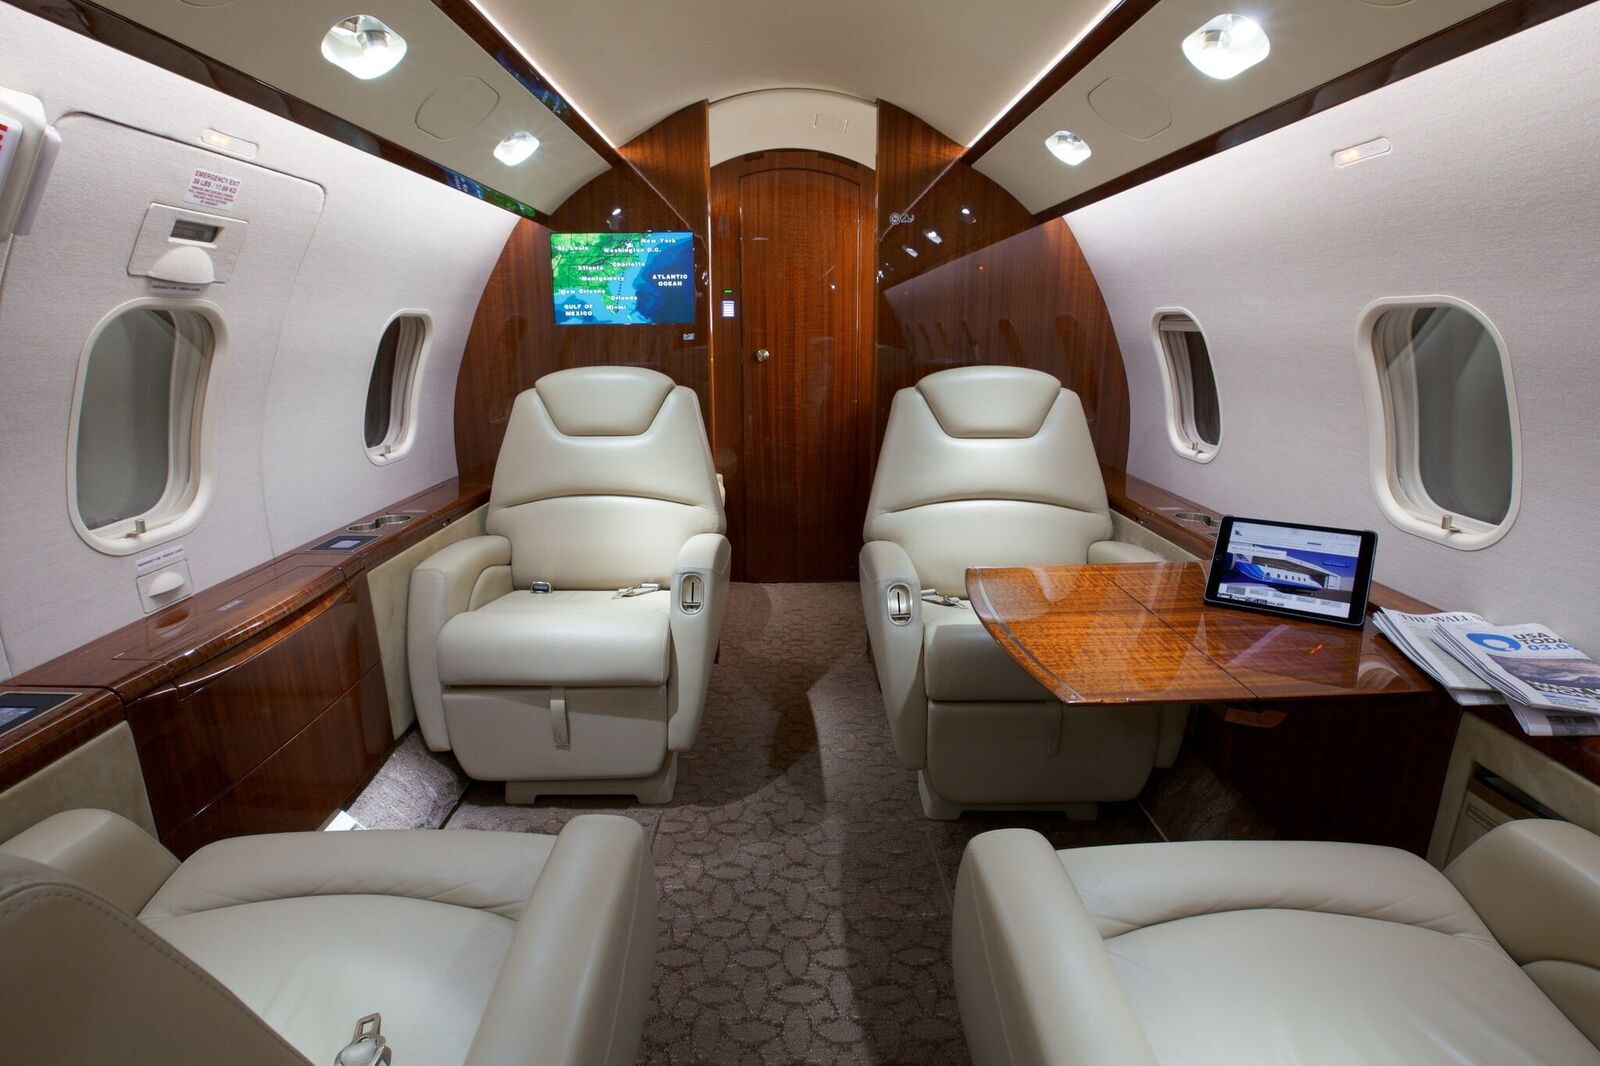 Challenger 300 cabin area with reclining seats and table